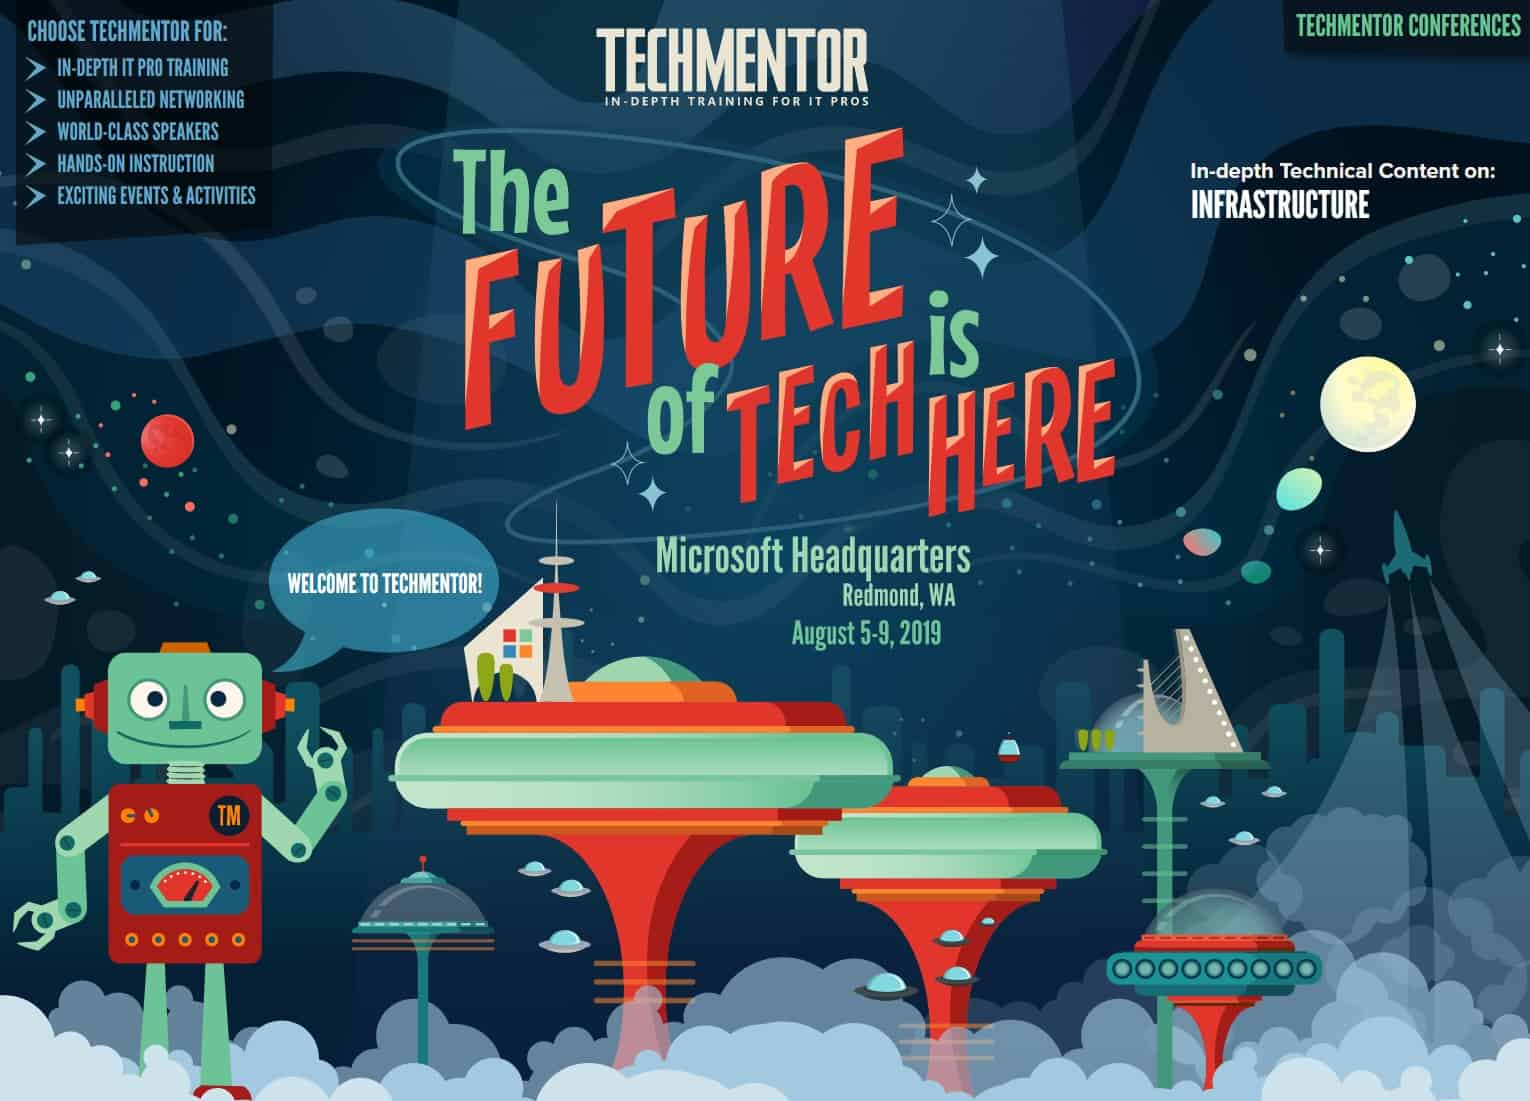 Techmentor 2019 Redmond